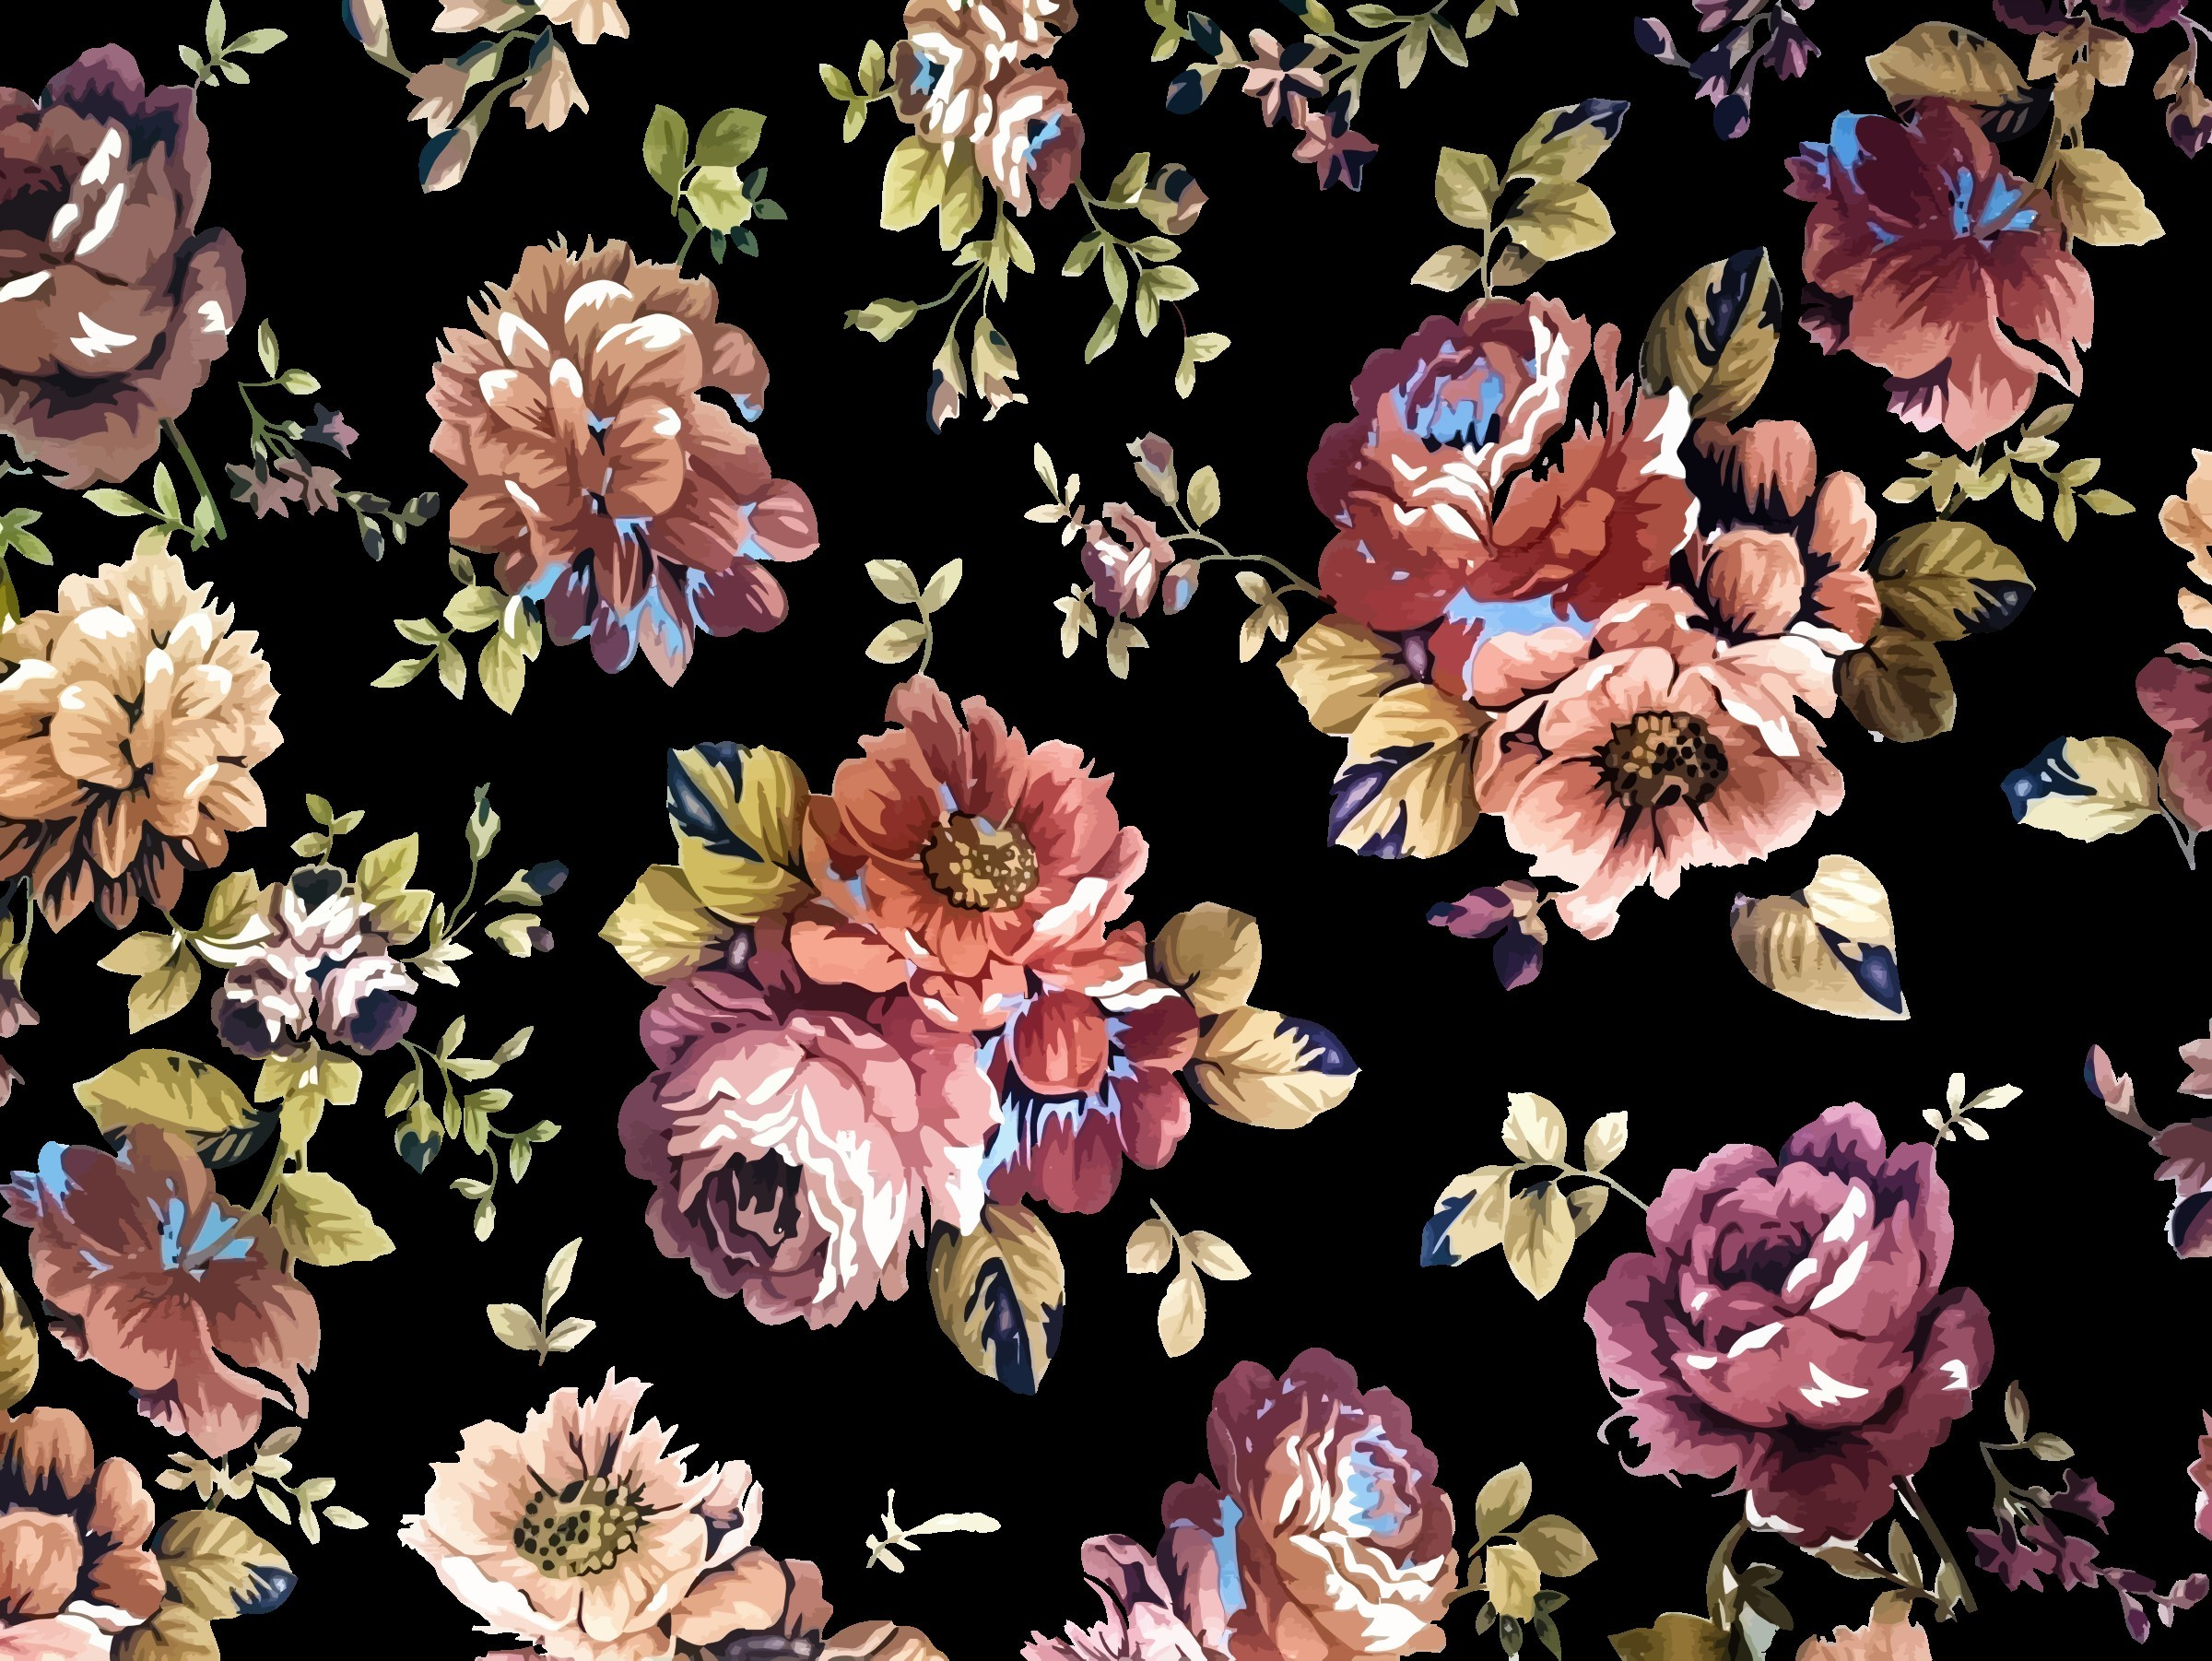 Vintage Flower Backgrounds 49 Pictures